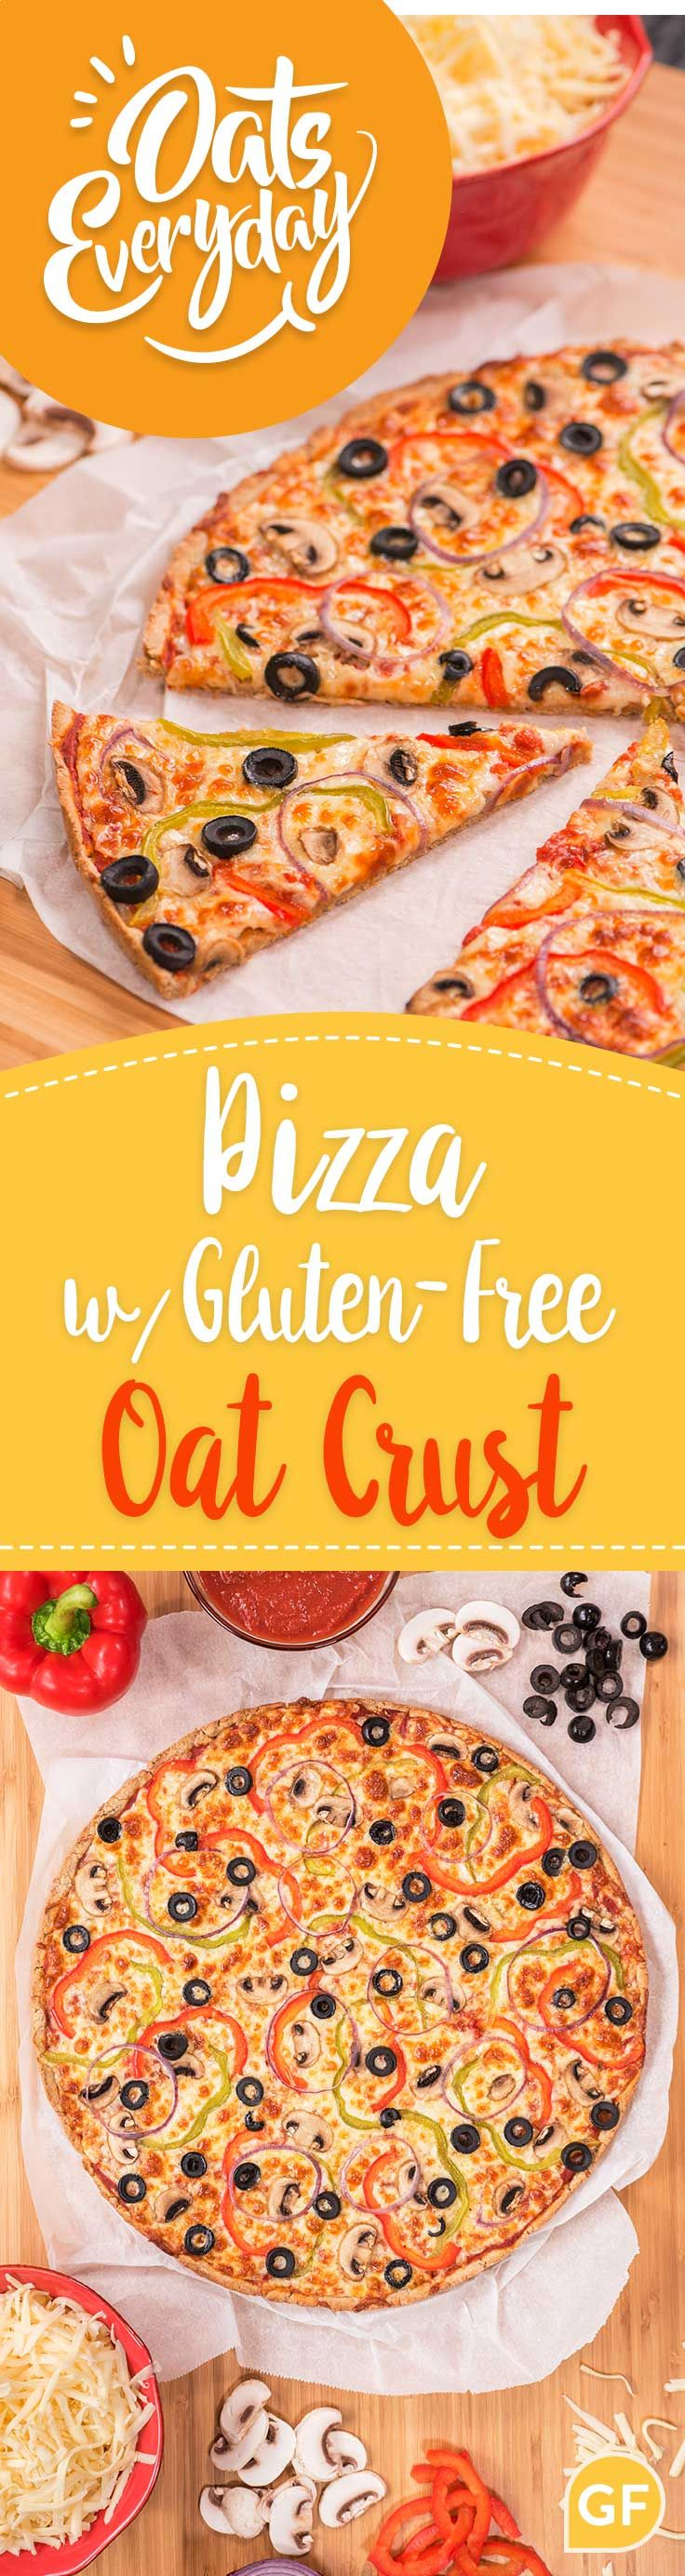 An easy, gluten-free dough made with oat flour.